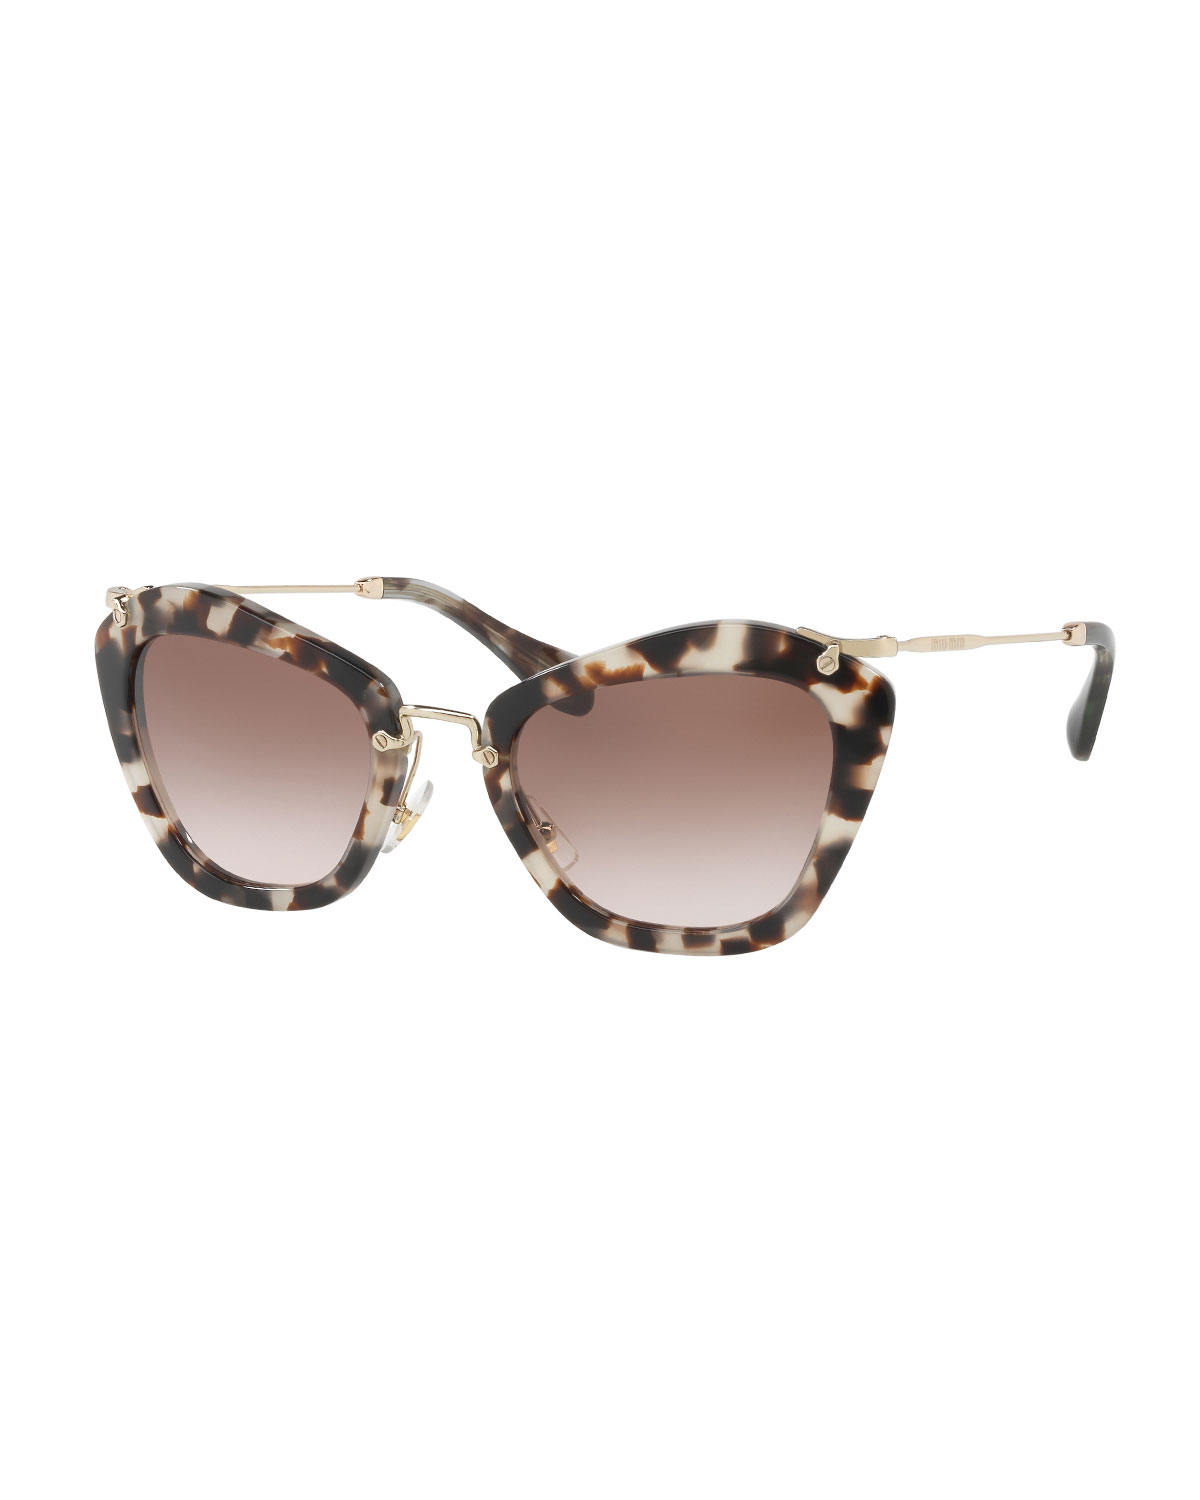 900ec6092d1 Miu Miu Cat-Eye Acetate Sunglasses